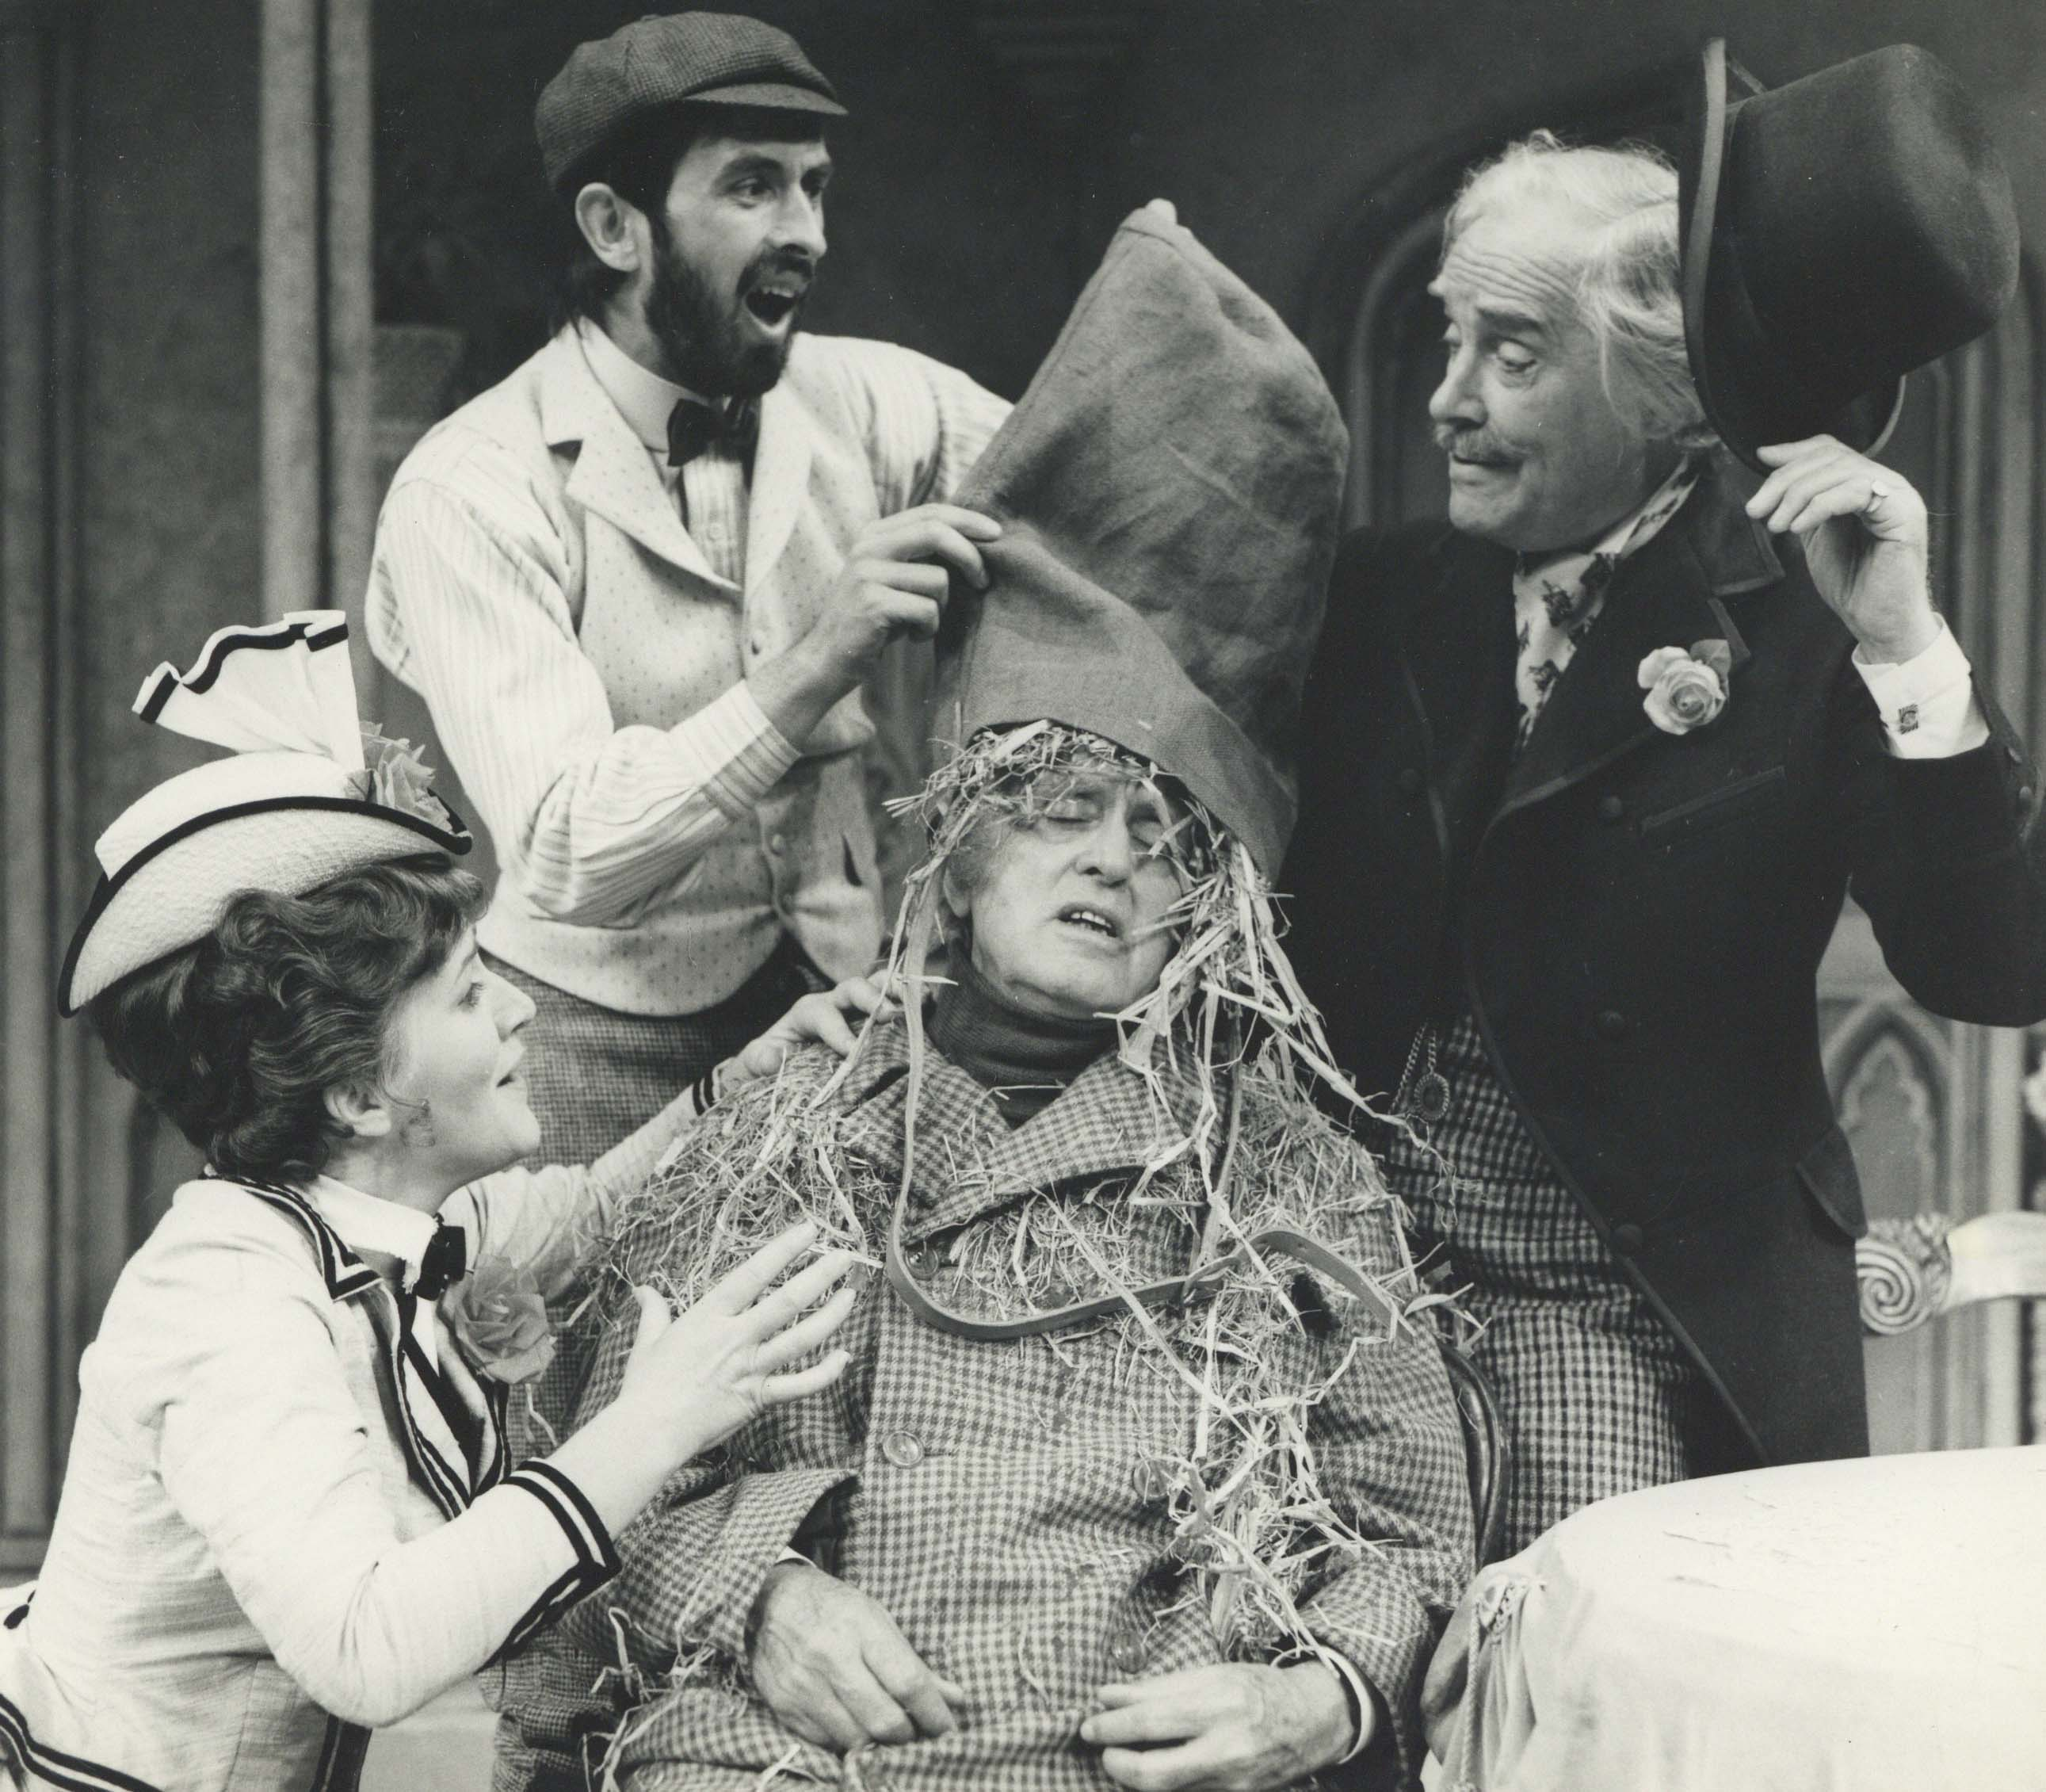 Production Photograph - Dandy Dick - Patricia Routledge, Richard Denning, Alastair Sim, Ralph Michael - 1973 - Photographer John Timbers (2)